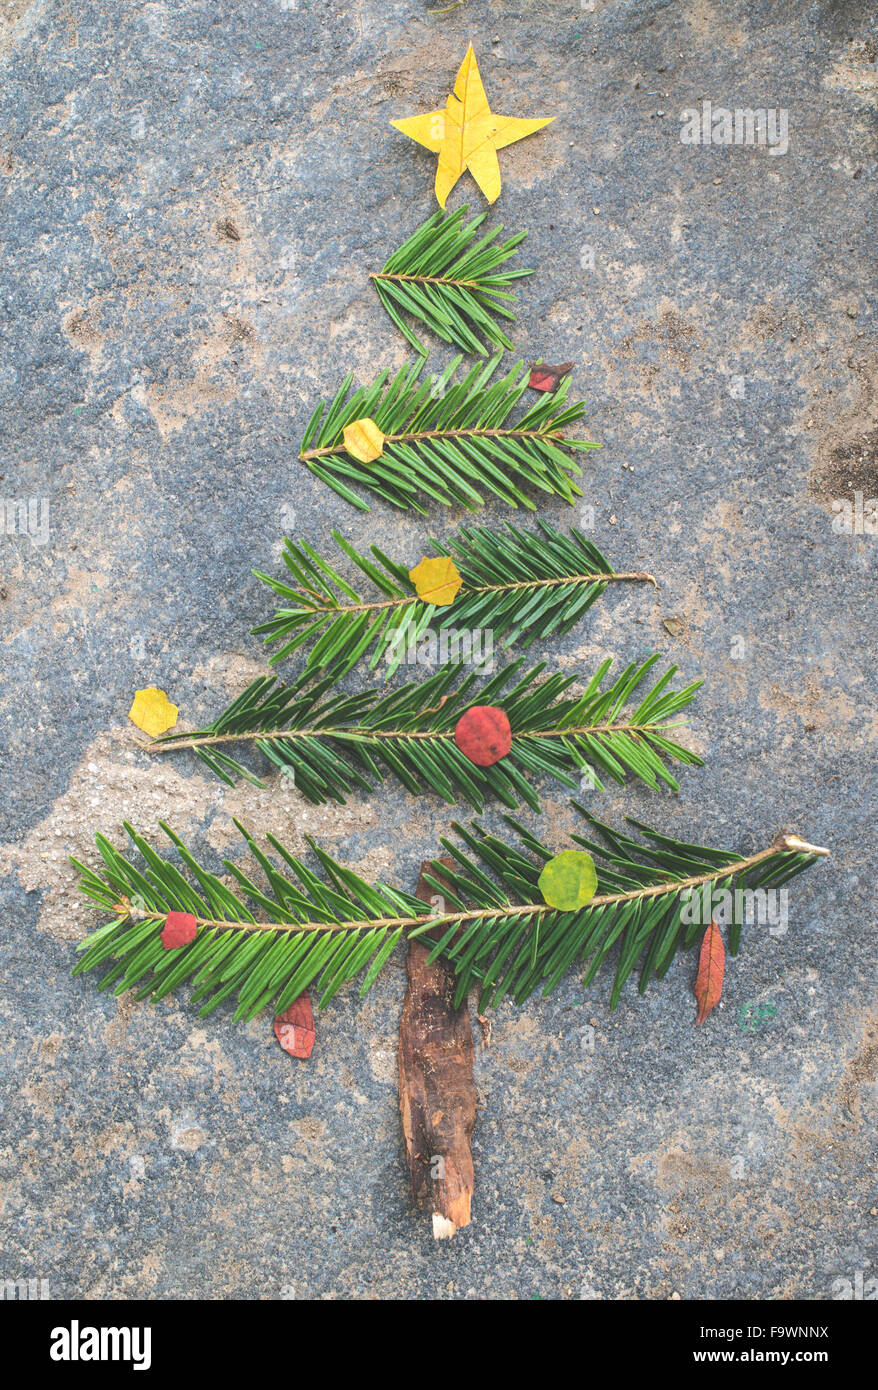 Pieces of fir branch, leaves and bark building shape of a Christmas tree - Stock Image